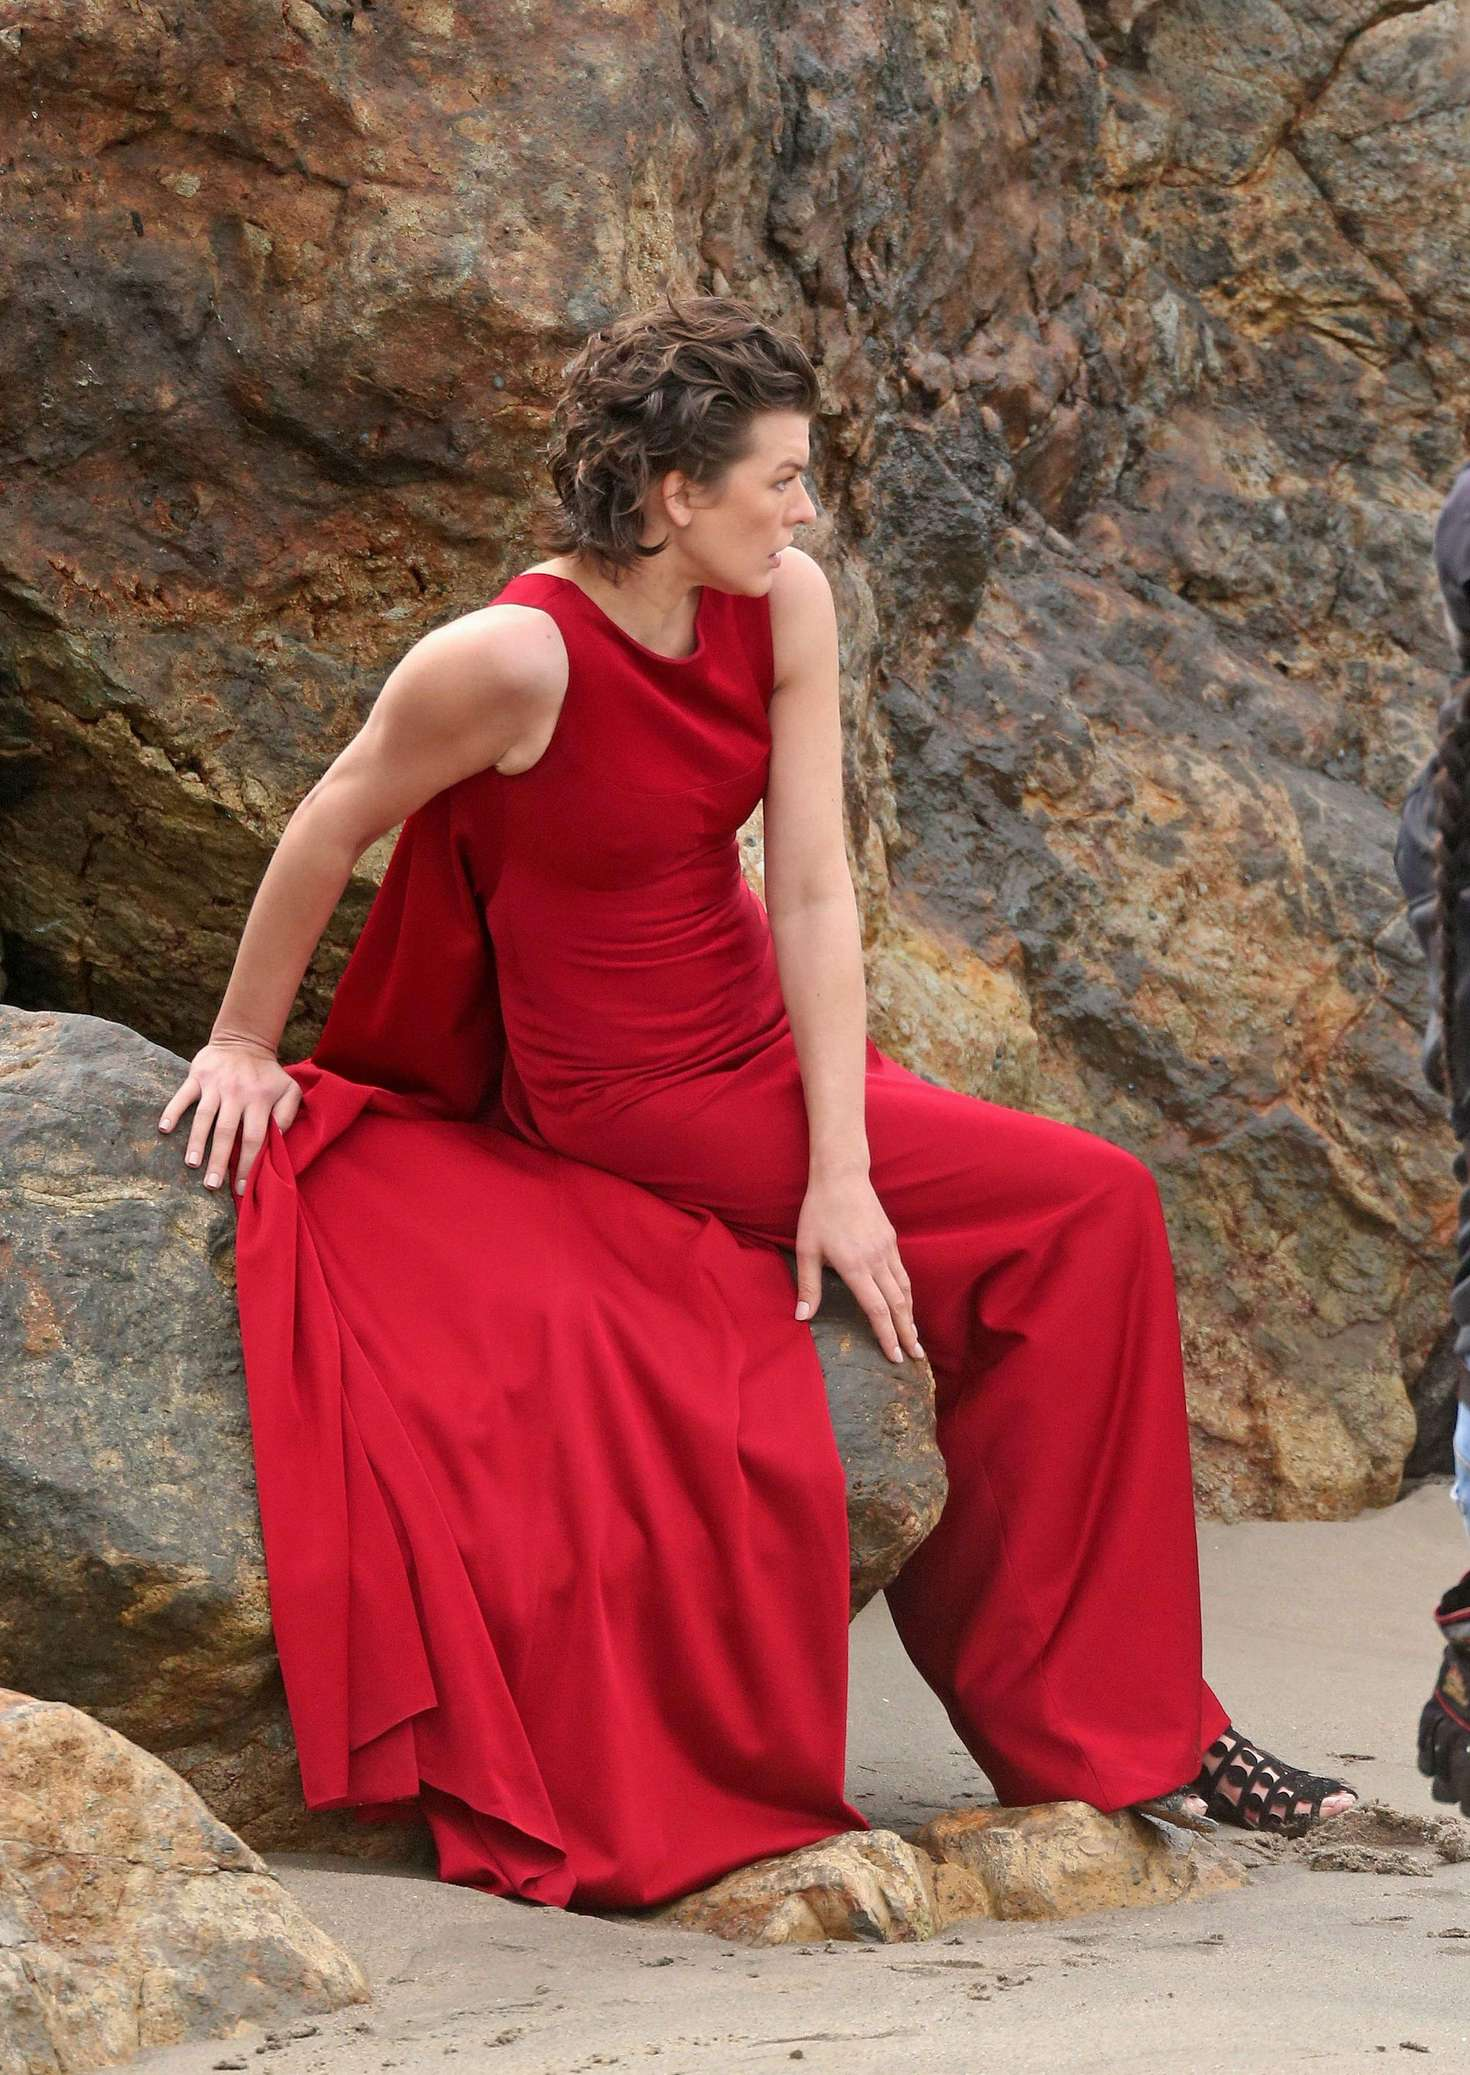 milla jovovich in red dress on photoshoot 10 gotceleb